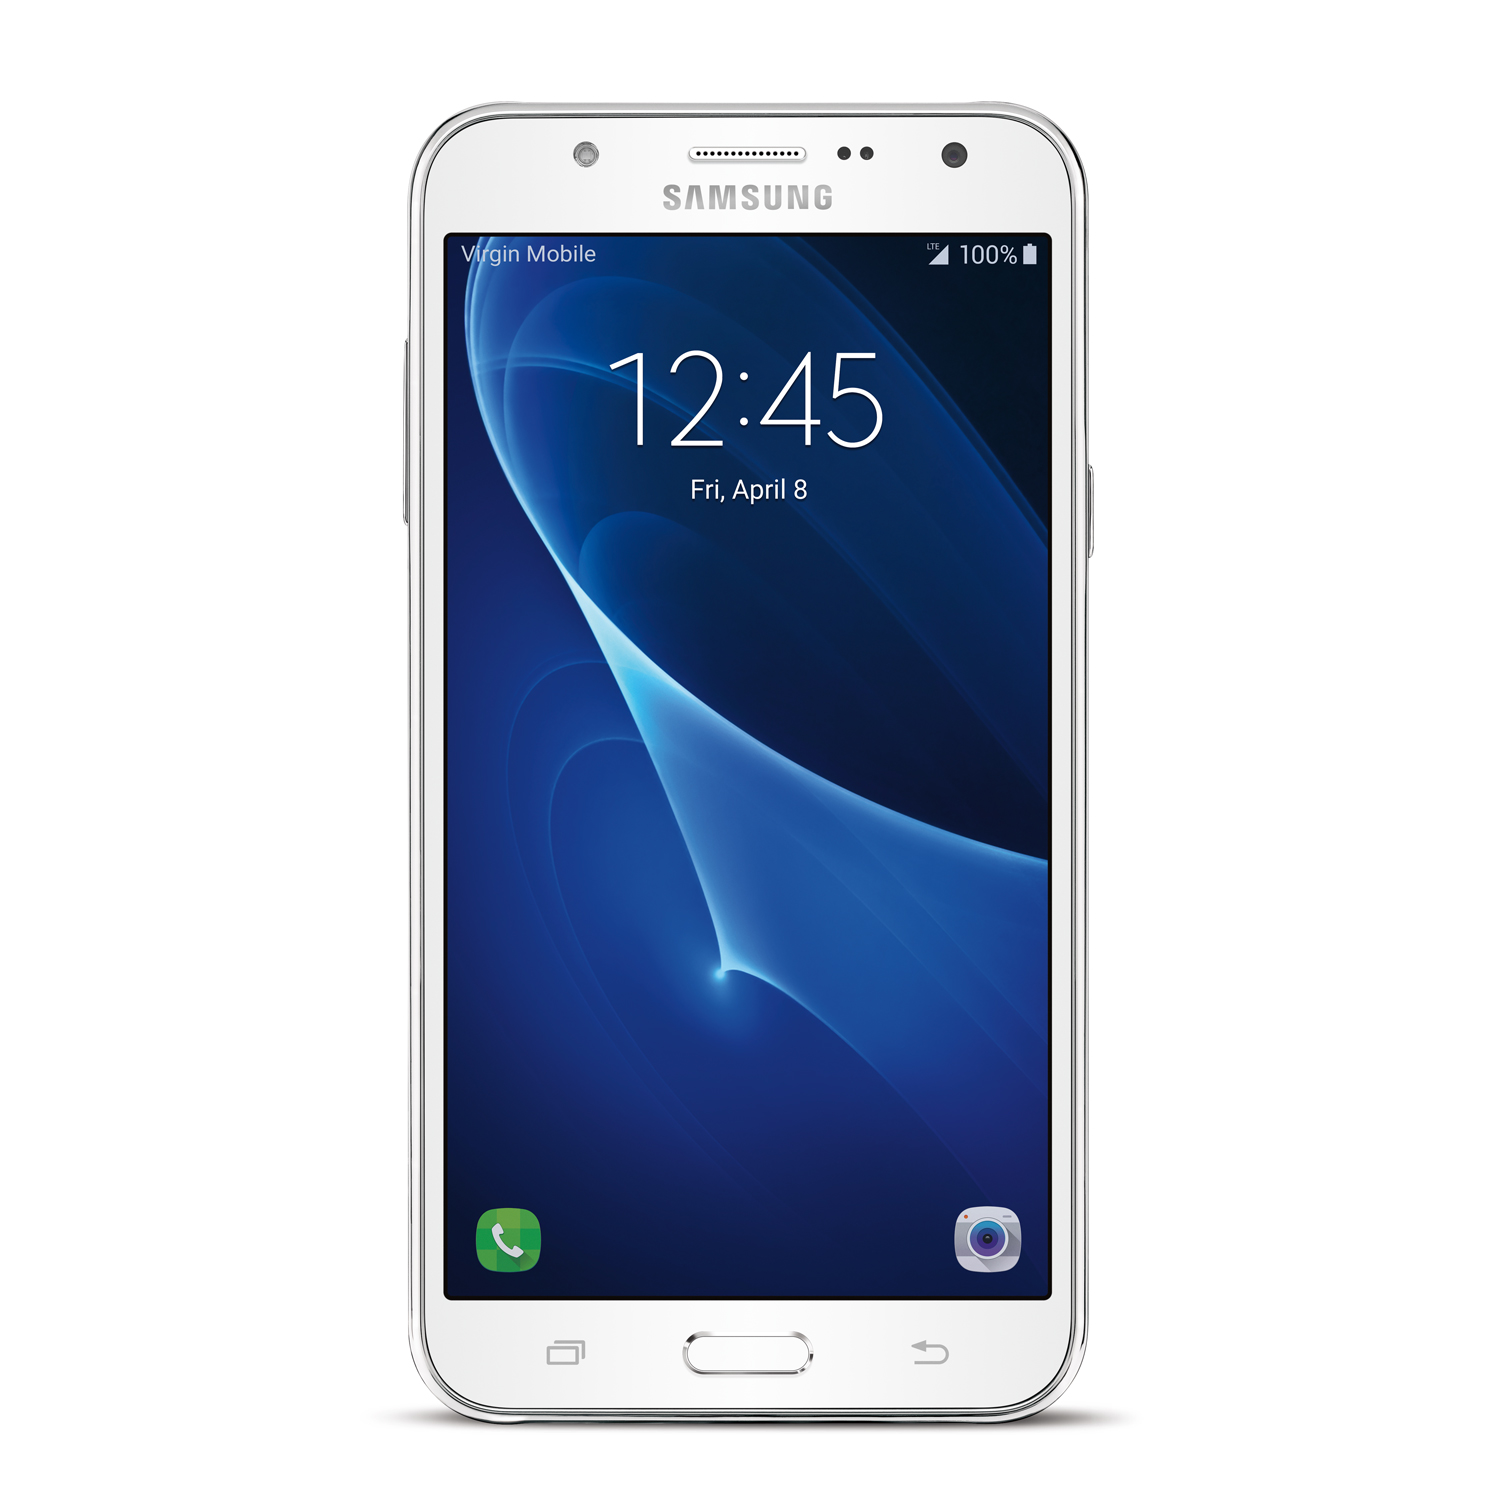 samsung galaxy j7 launches on boost and virgin mobile this